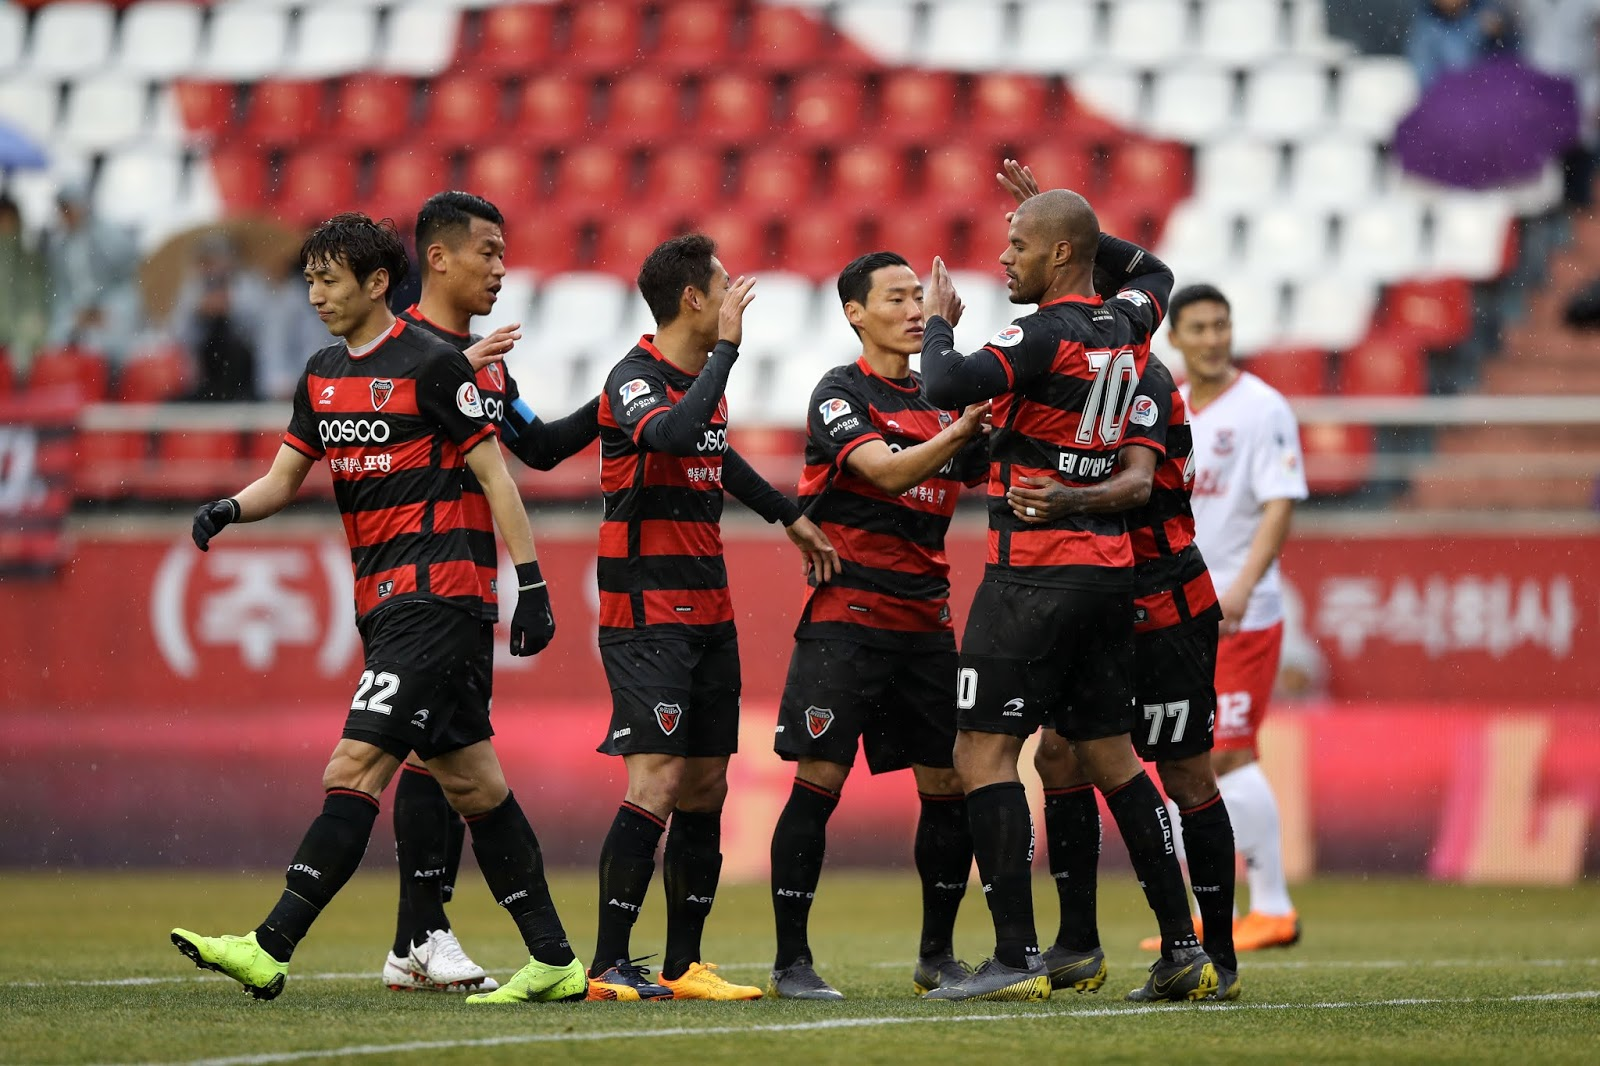 K League 1 2019 Round 3 Preview: Pohang Steelers vs Gyeongnam FC